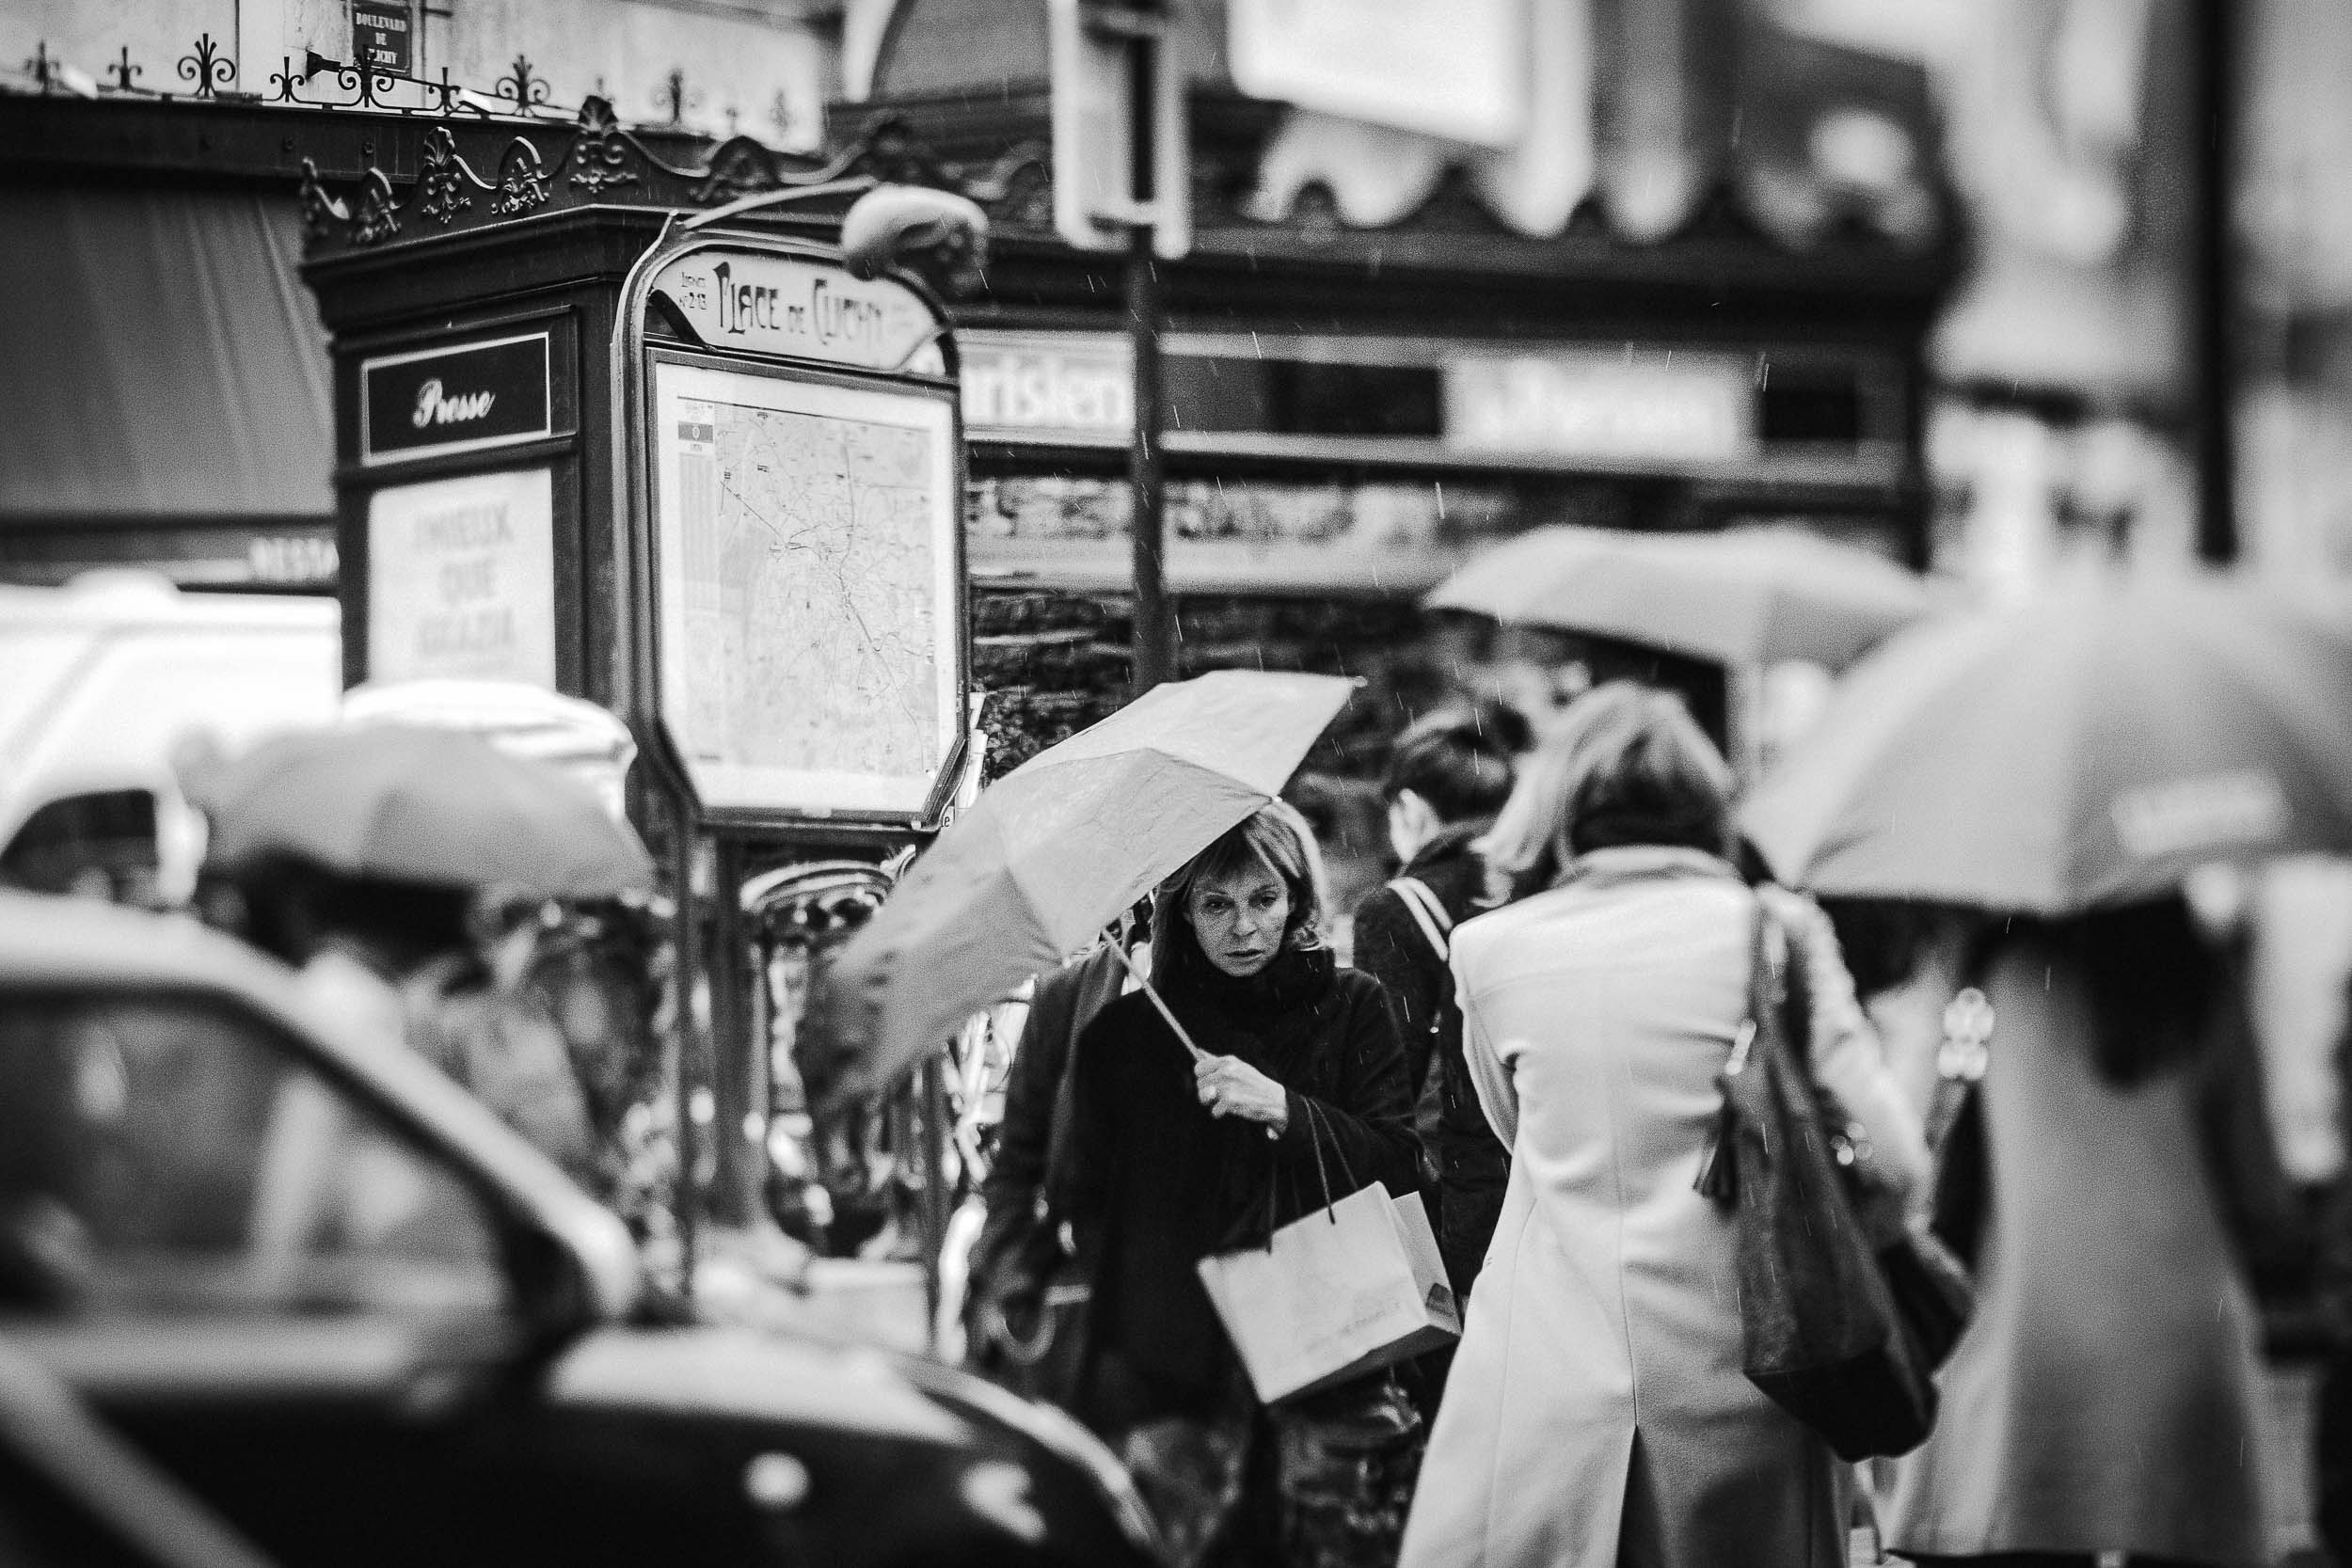 blank wall gallery - Street Photography Exhibition